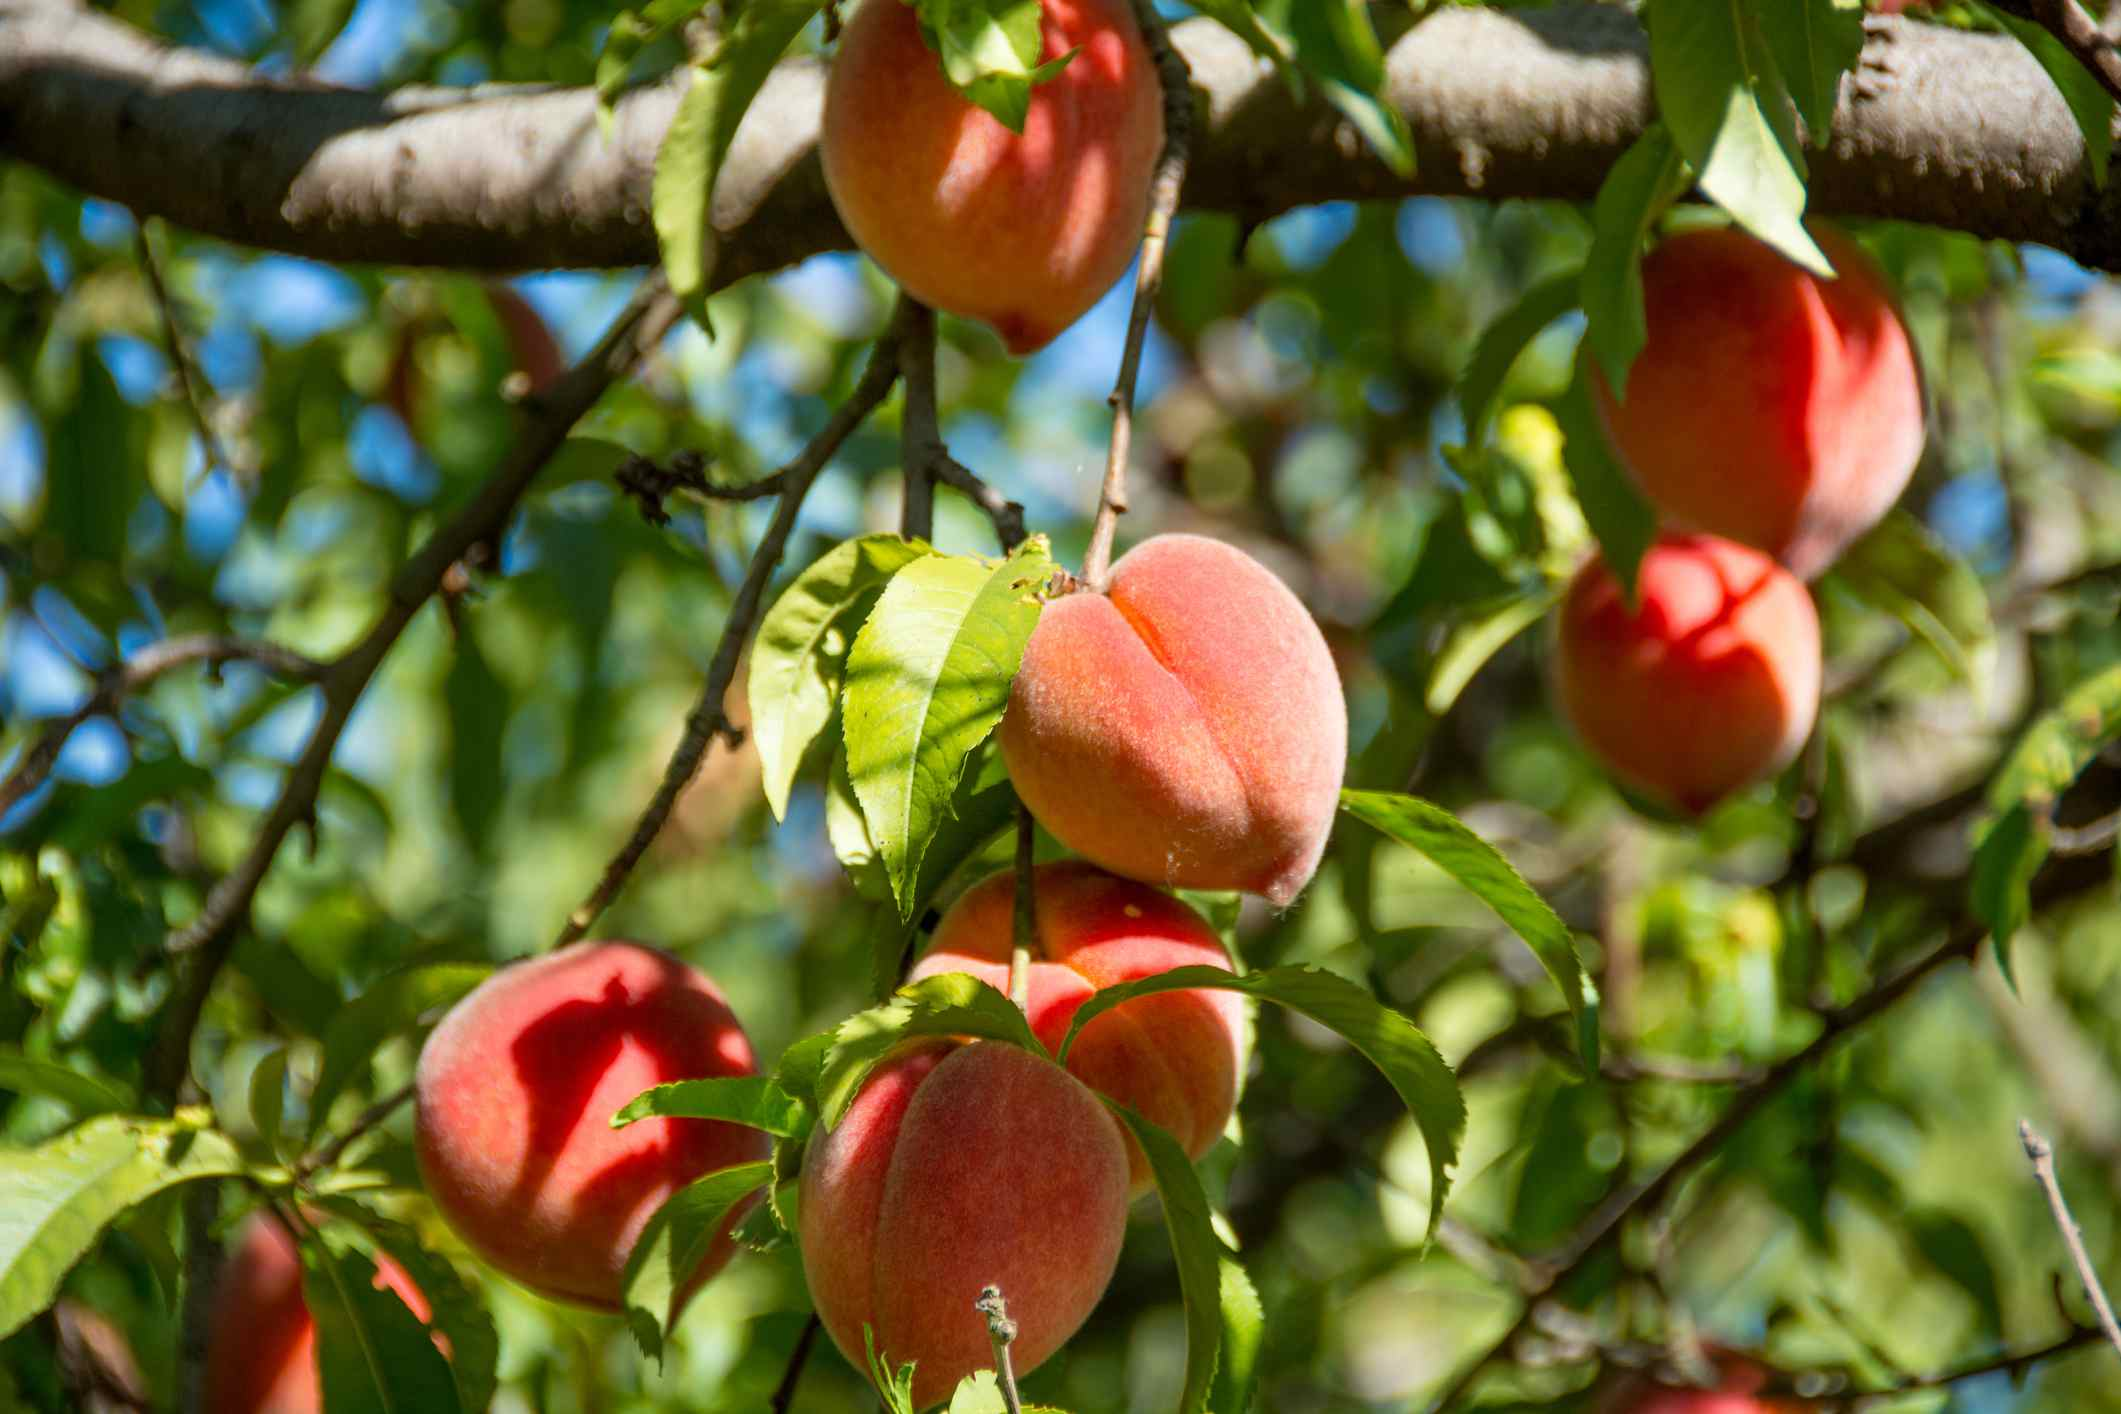 Ripe peaches hang from tree ready for harvest